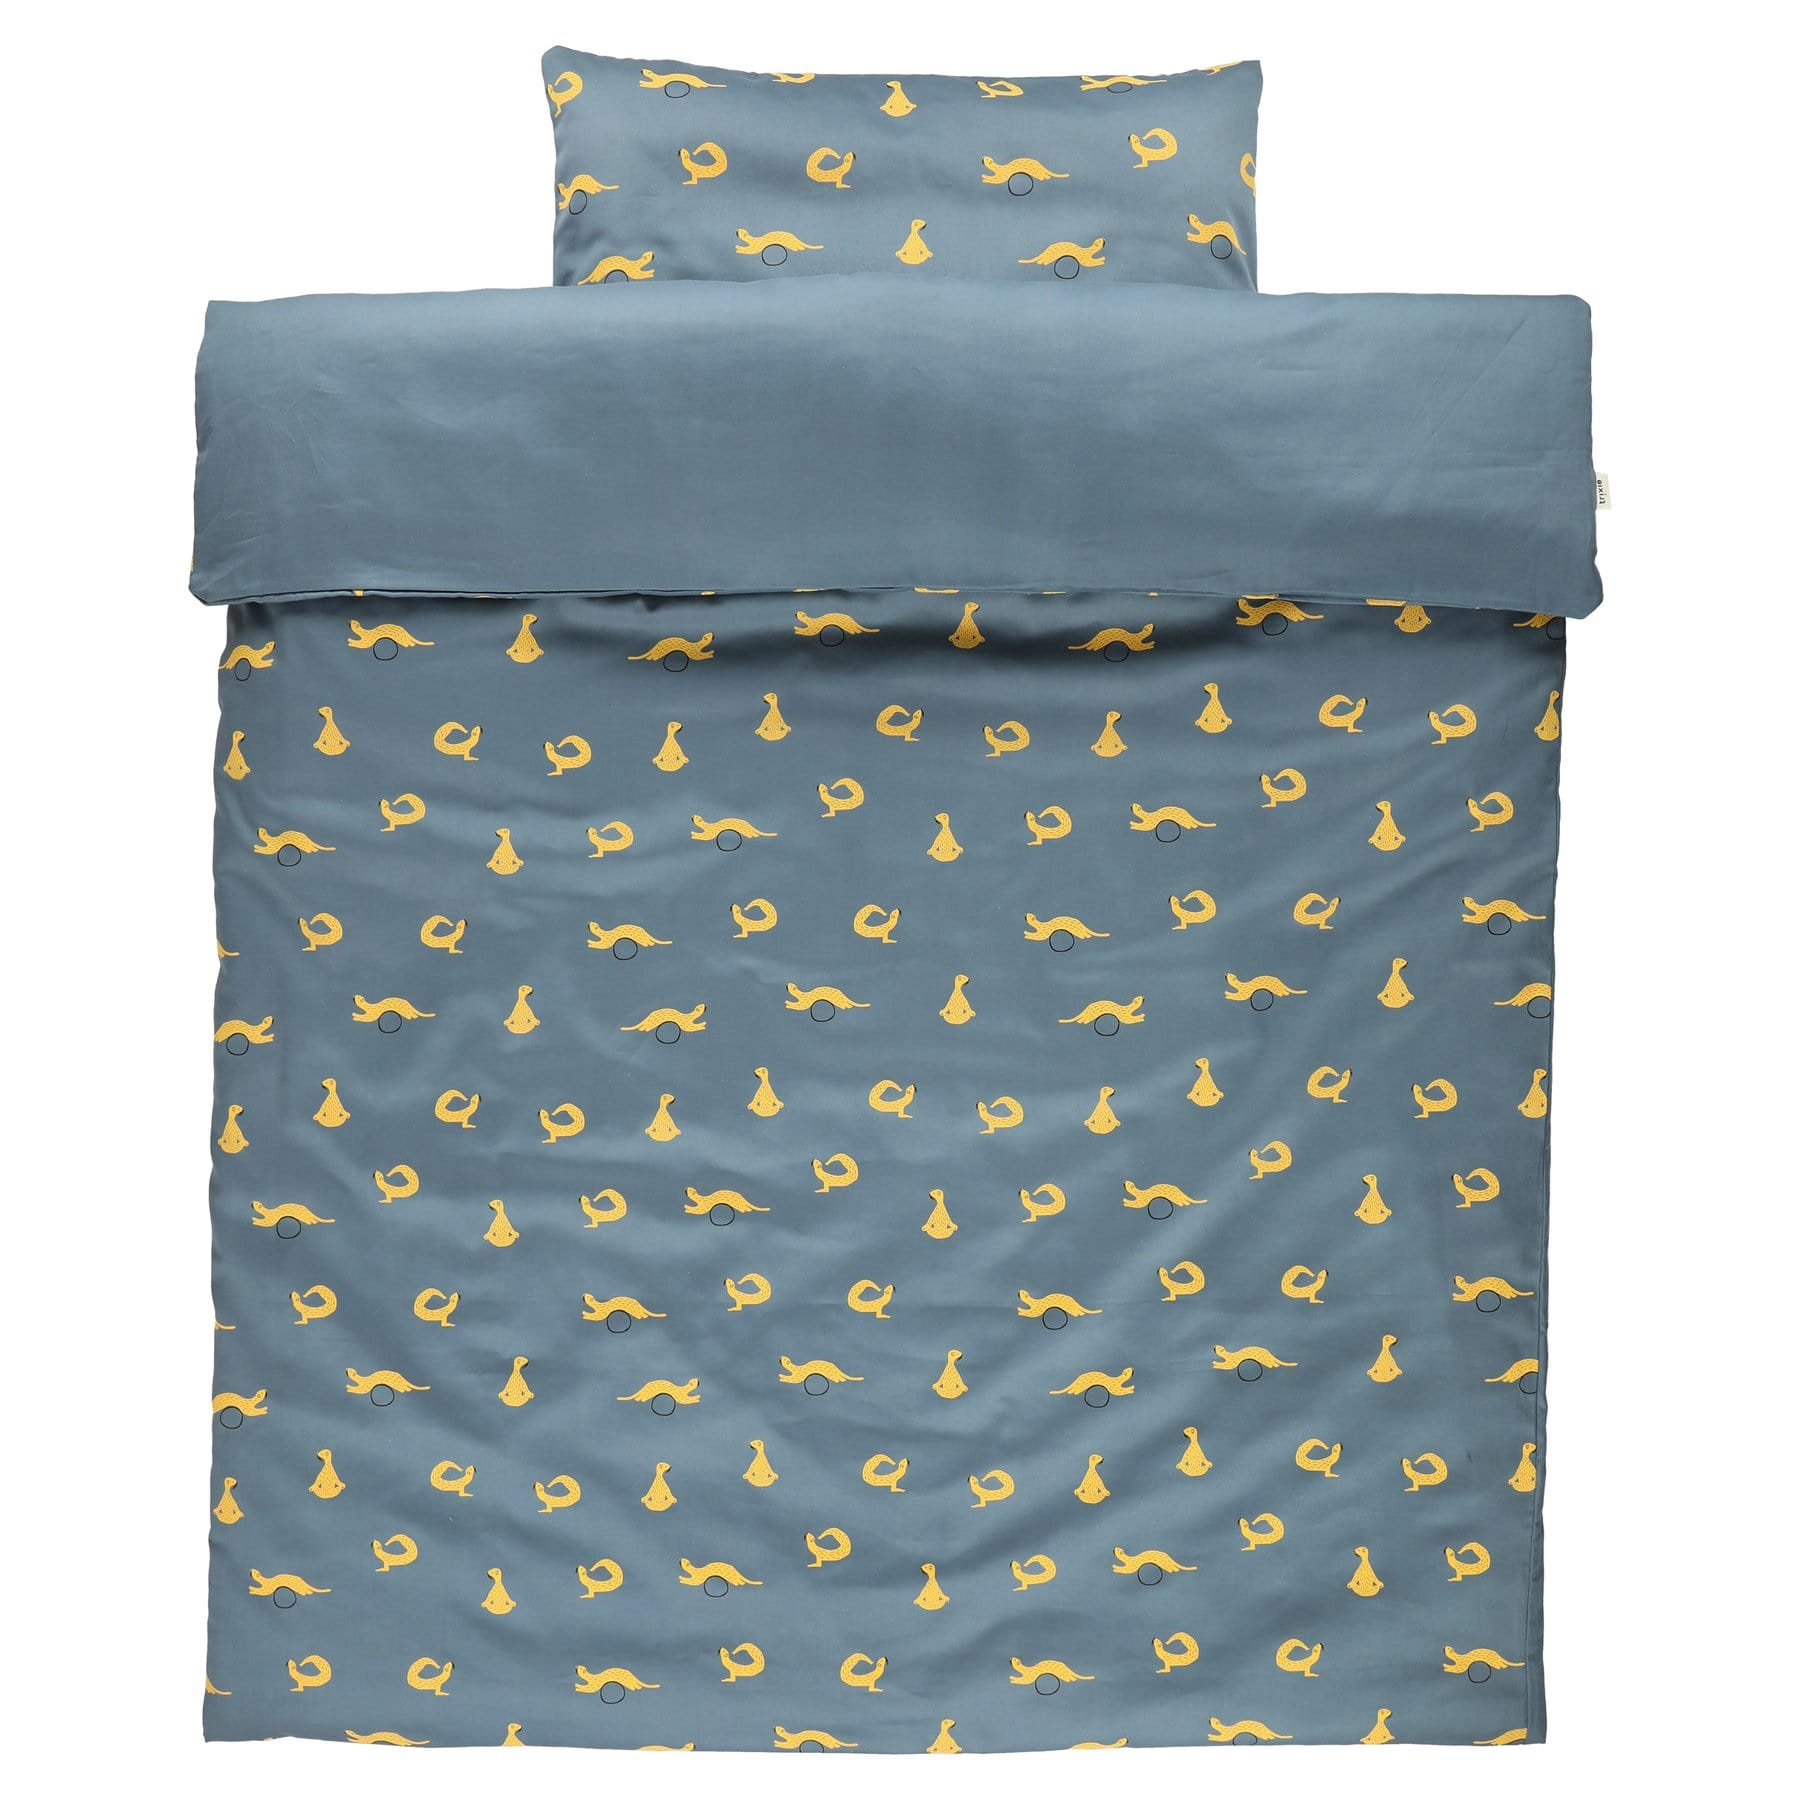 Kid duvet cover - Whippy Weasel